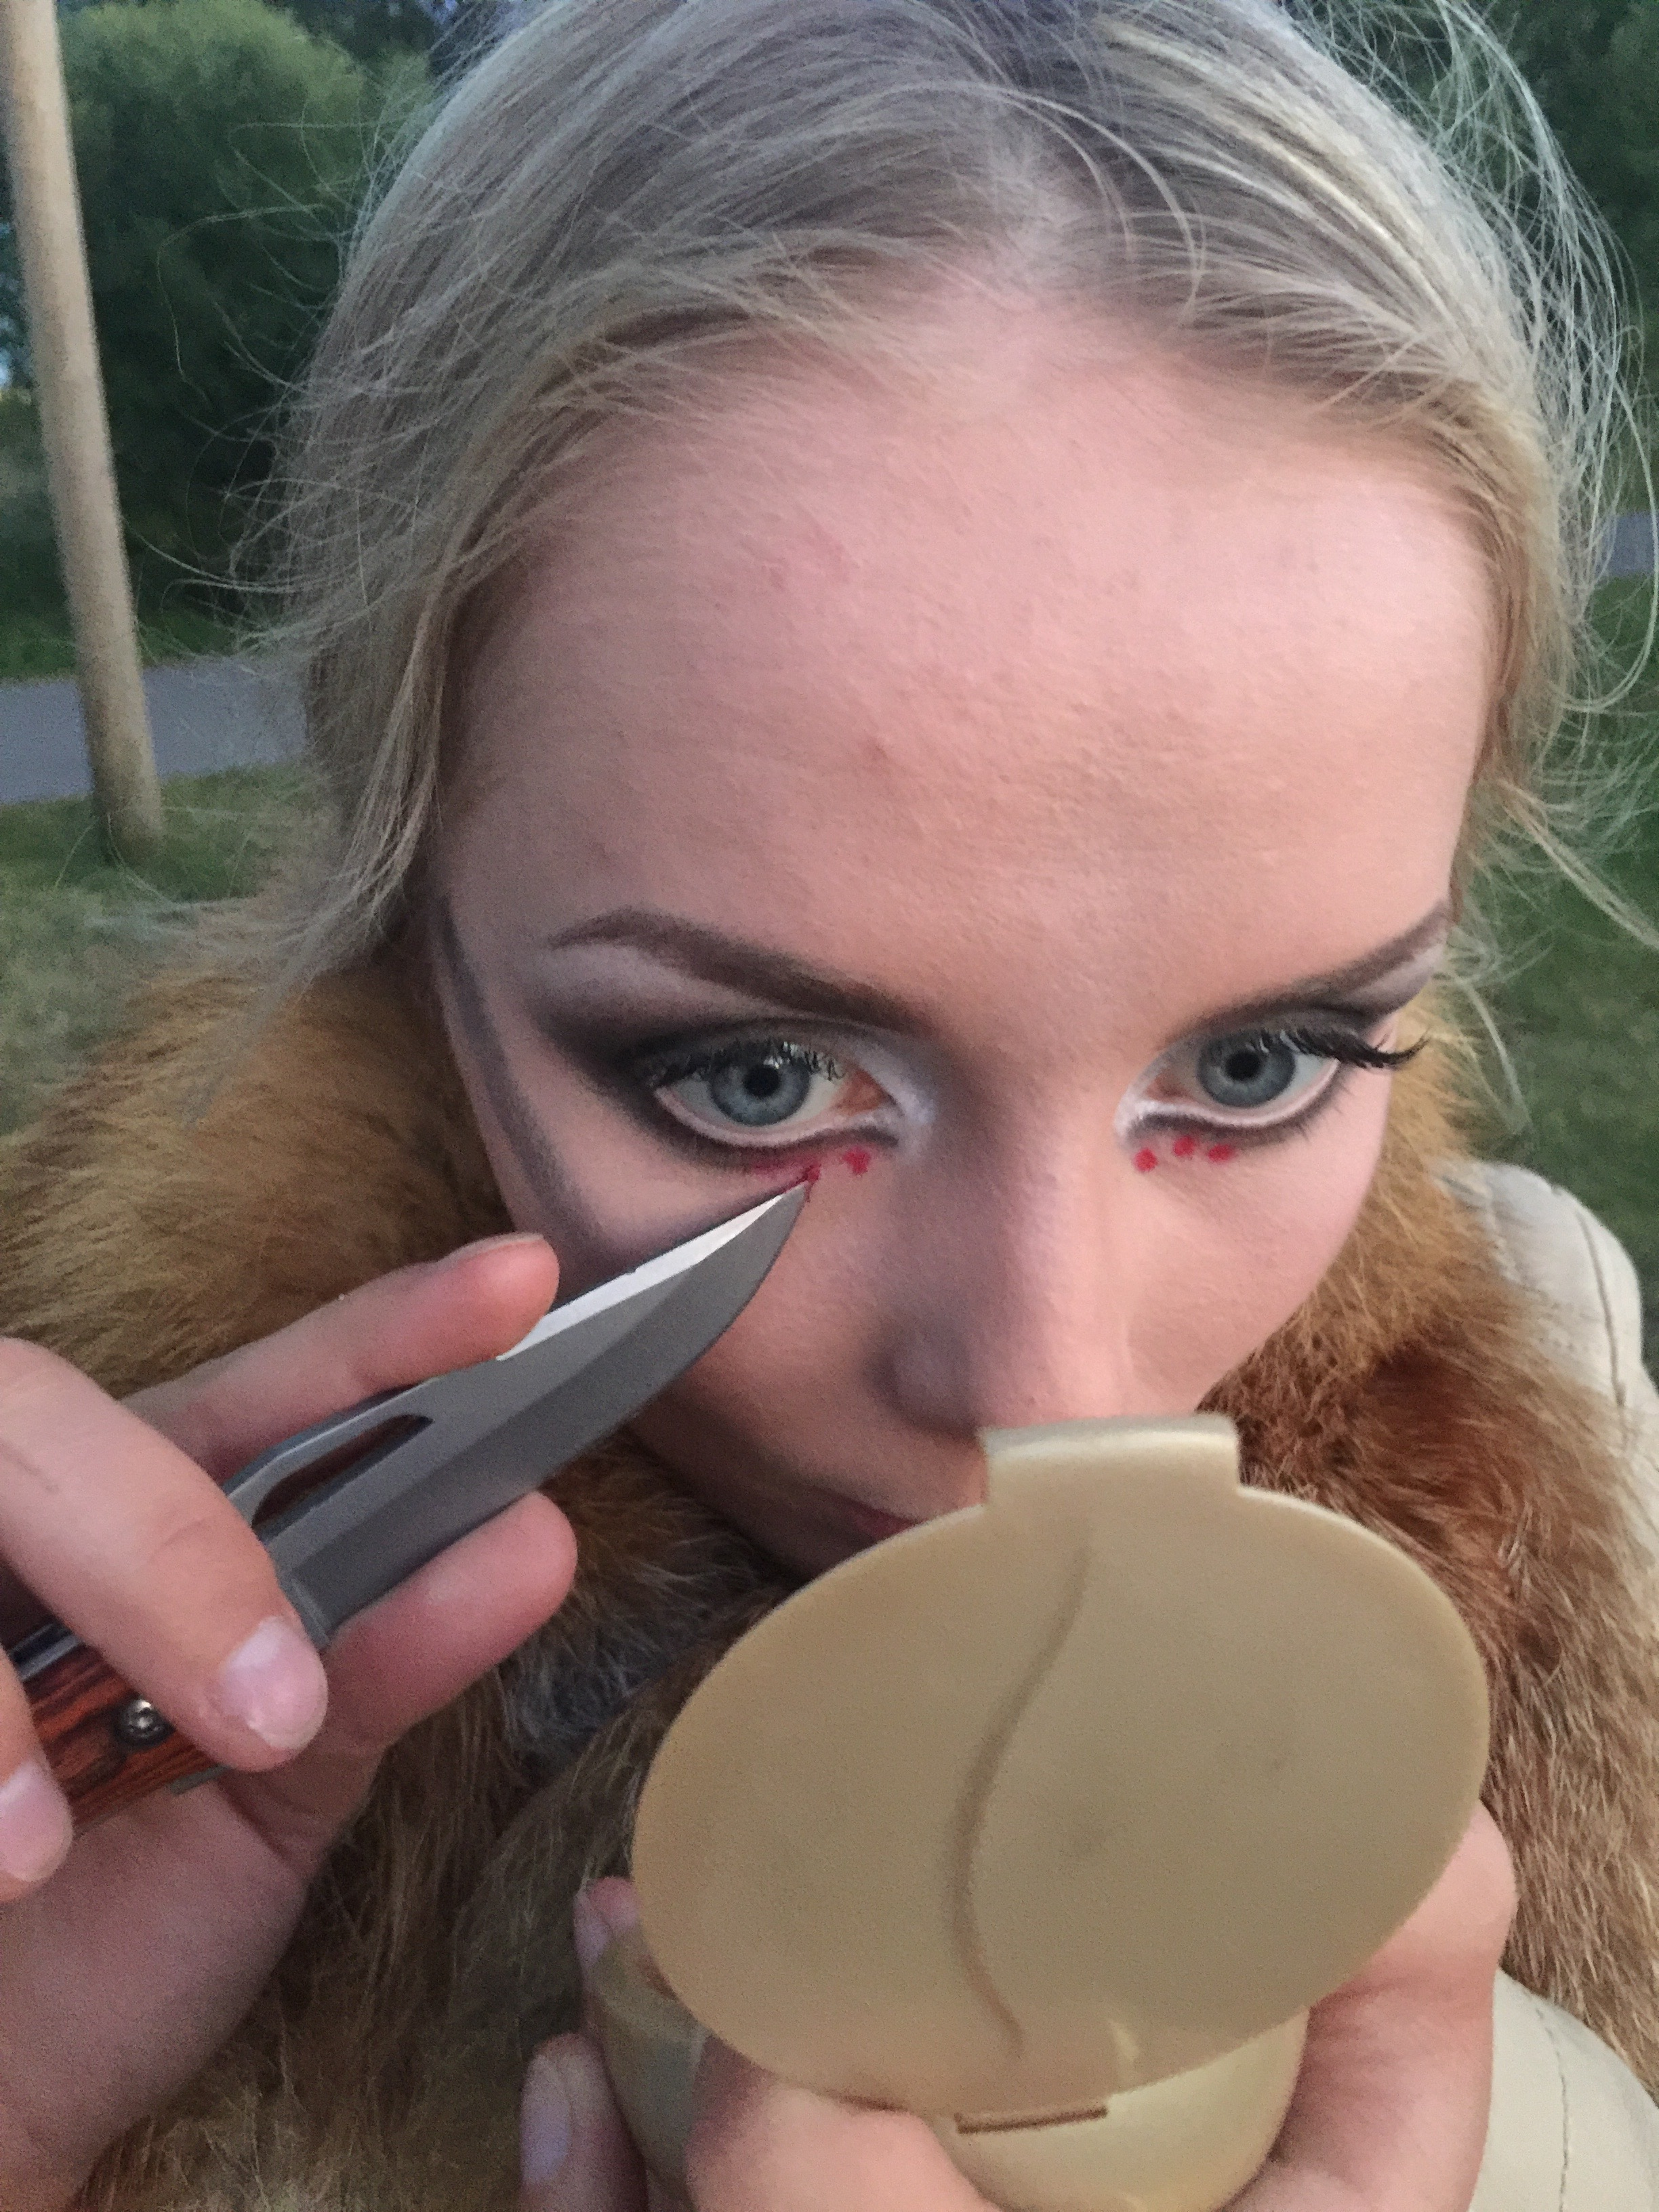 This is totally NOT Grete reapplying makeup with a knife, we wouldn't even think of doing anything as silly as that.